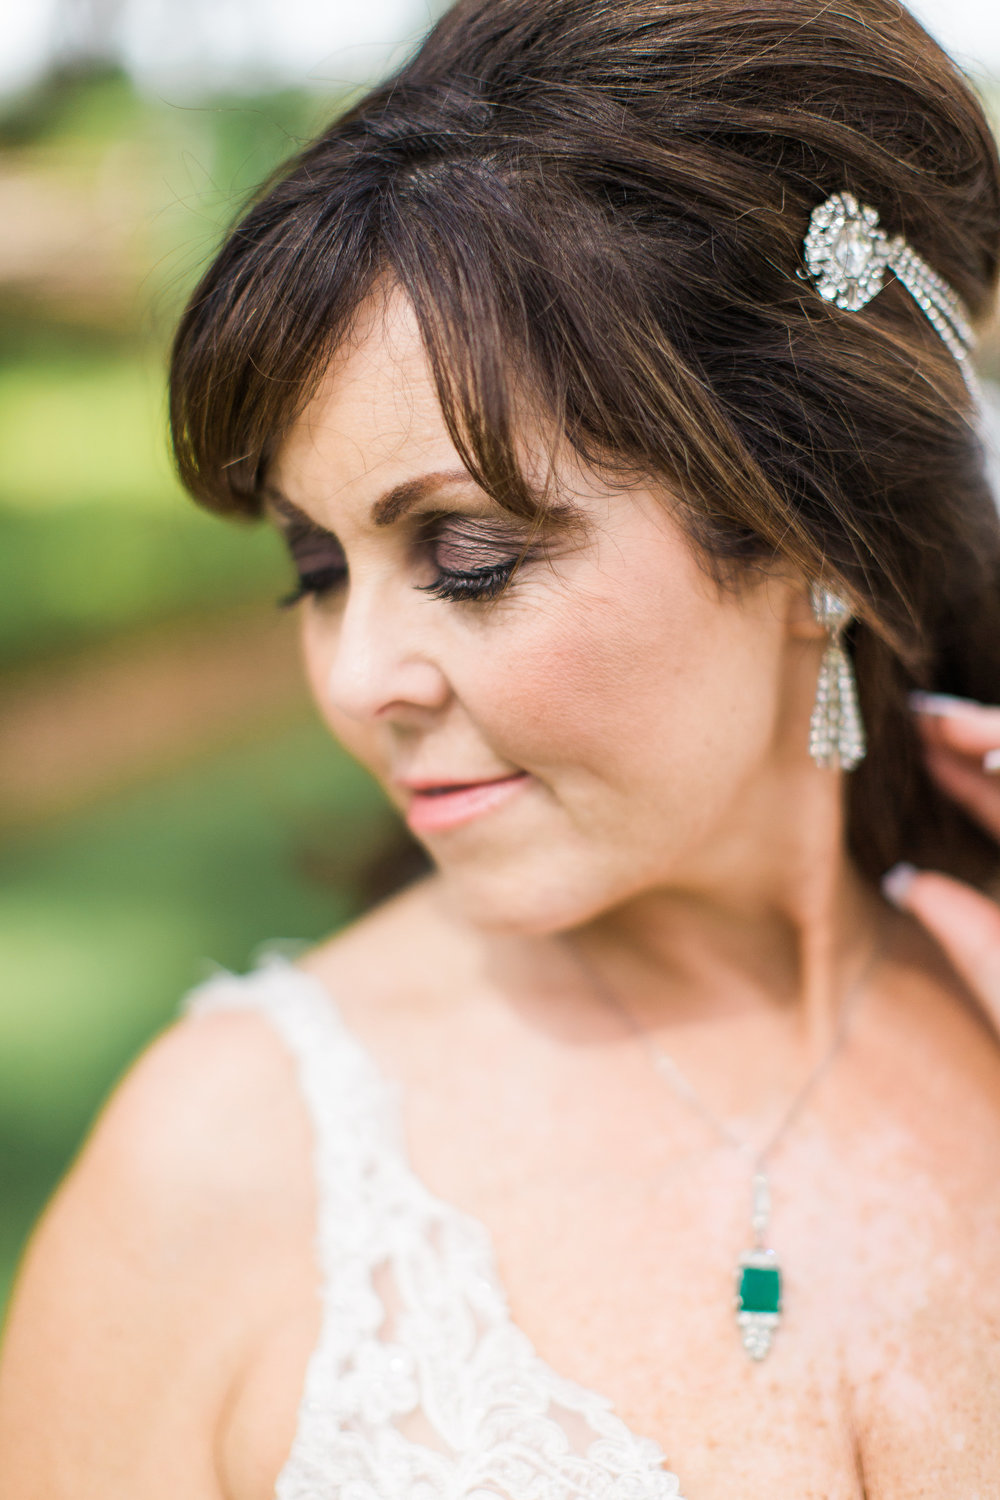 ivory-and-beau-bridal-boutique-jim-and-melanie-marianne-lucille-photography-oldfield-plantation-wedding-beautfort-inn-wedding-11.jpg